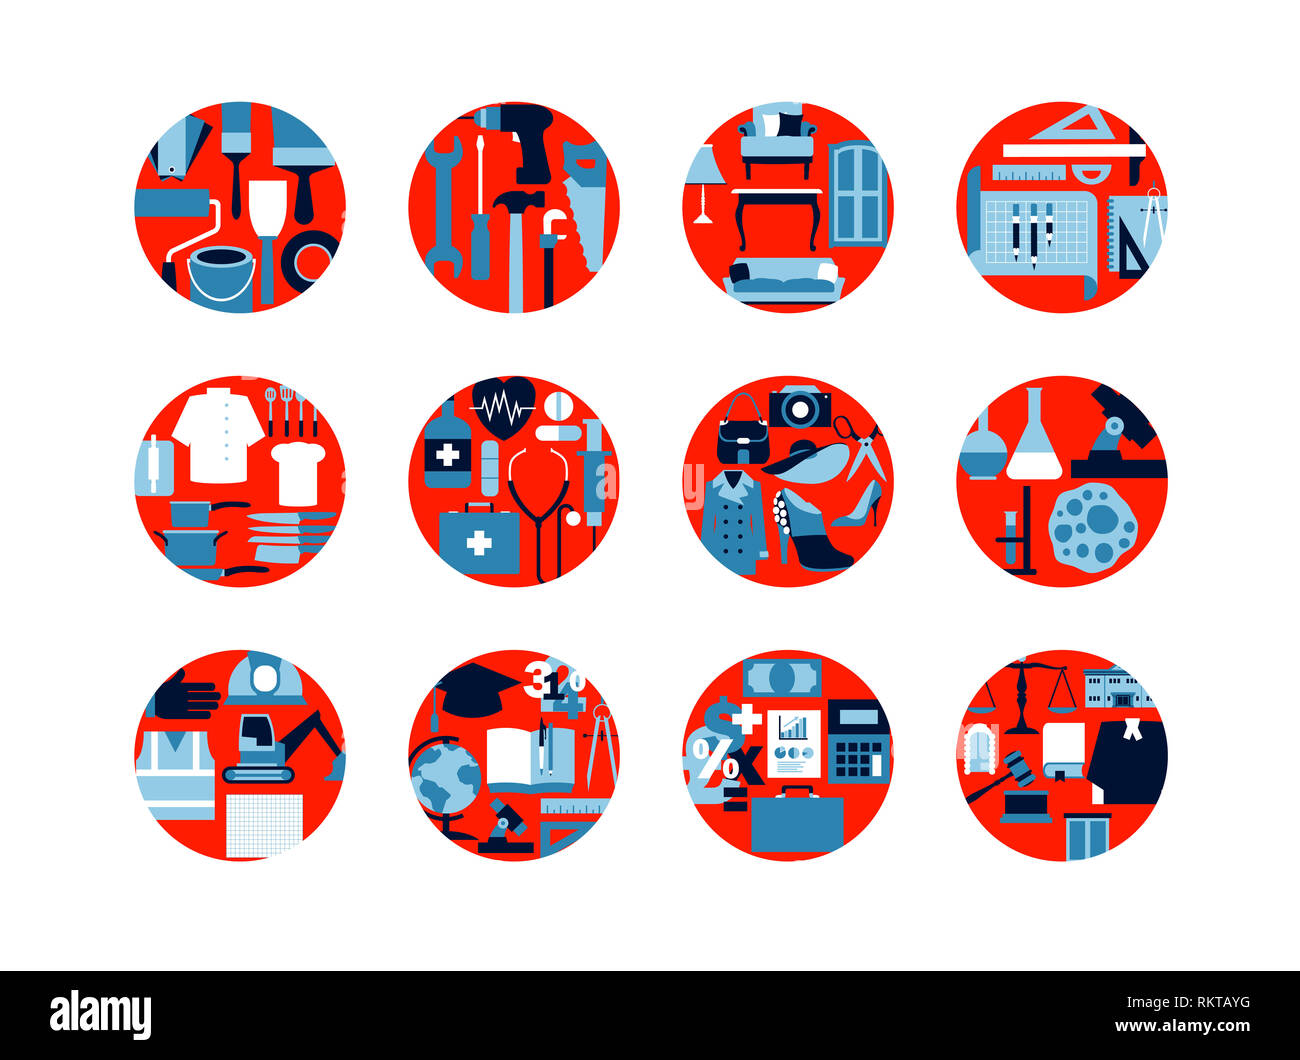 Rows of circles representing different industries - Stock Image